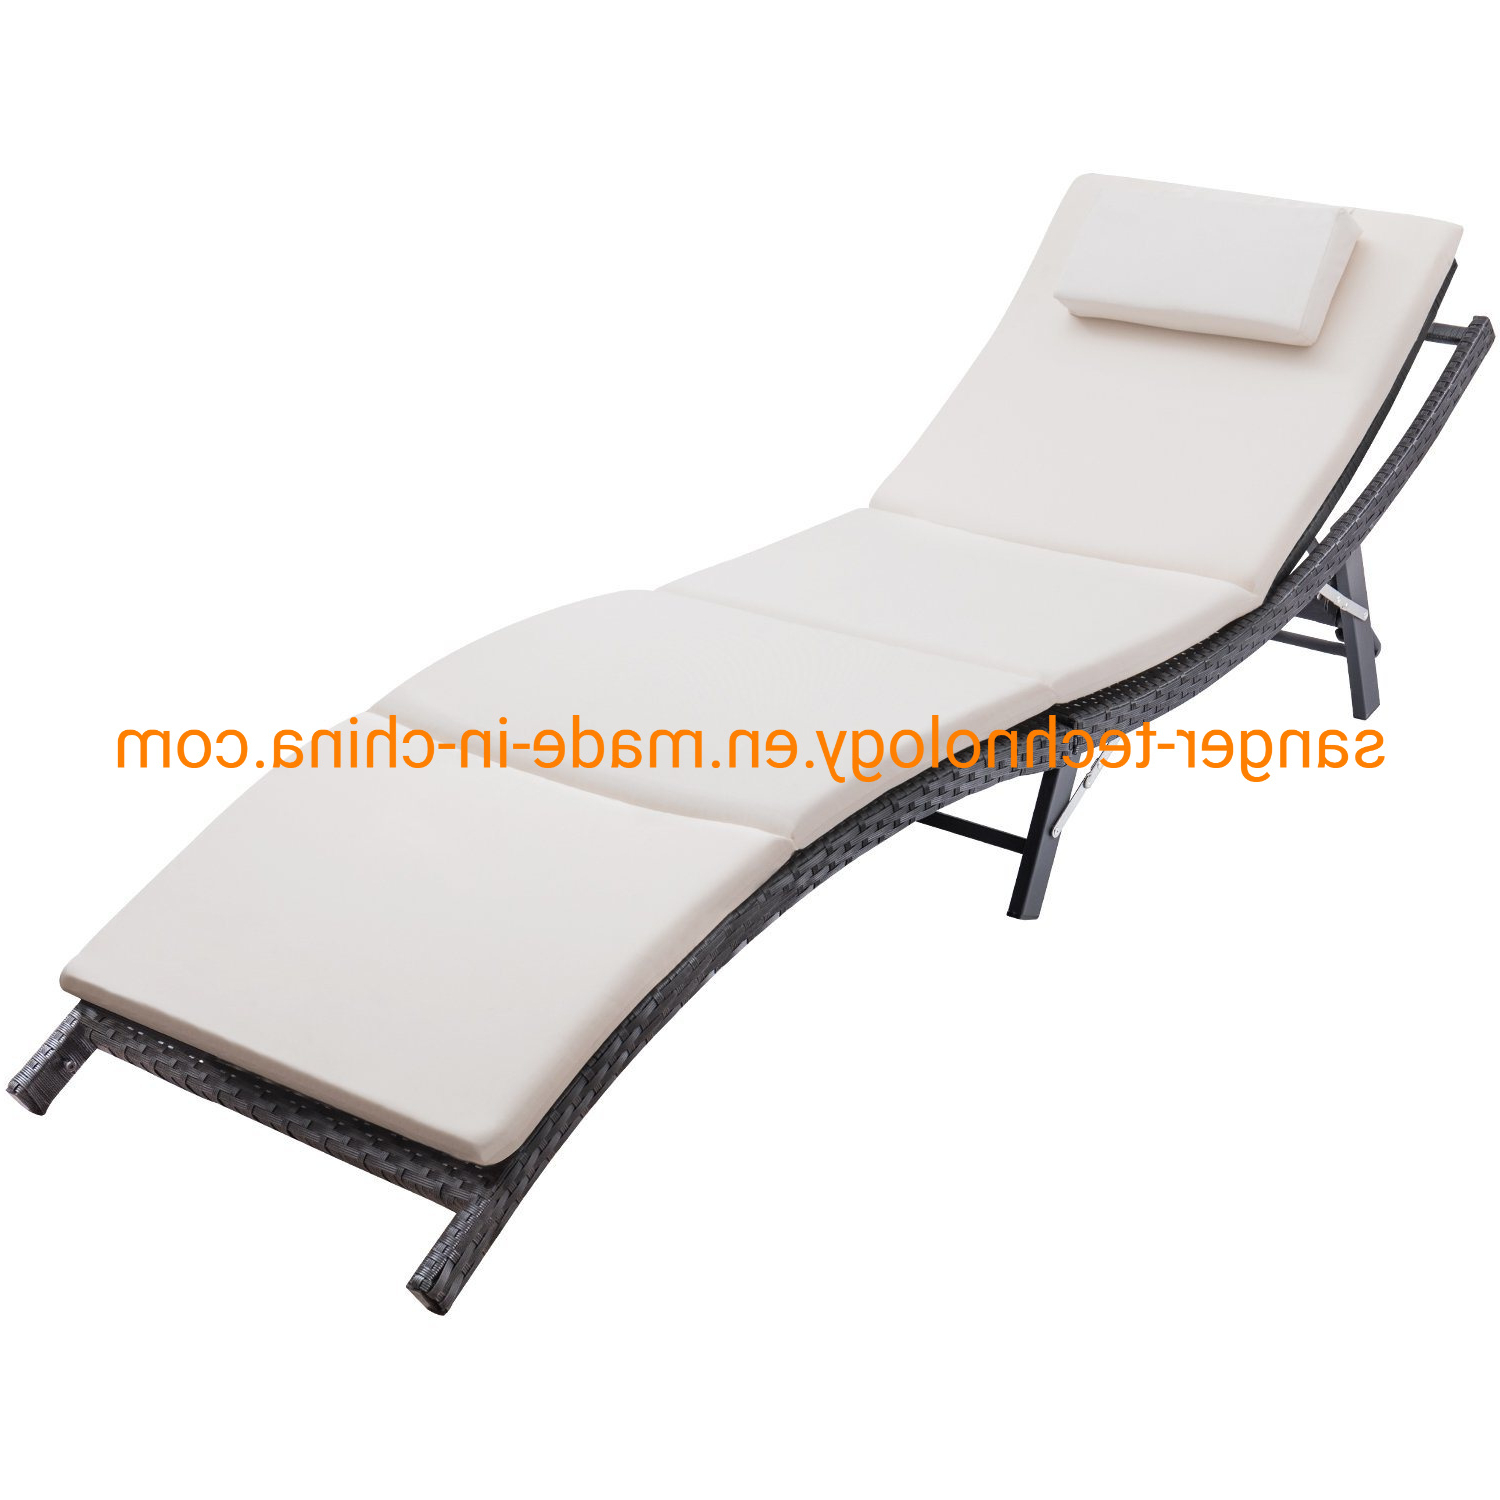 [%[Hot Item] Outdoor Patio Chaise Lounge With Cushion Modern Adjustable Pool Lounge Furniture All Weather Pe Wicker Rattan Backrest Patio Lounger For Pertaining To Current Outdoor Adjustable Rattan Wicker Chaise Pool Chairs With Cushions|Outdoor Adjustable Rattan Wicker Chaise Pool Chairs With Cushions Throughout Most Recent [Hot Item] Outdoor Patio Chaise Lounge With Cushion Modern Adjustable Pool Lounge Furniture All Weather Pe Wicker Rattan Backrest Patio Lounger For|Best And Newest Outdoor Adjustable Rattan Wicker Chaise Pool Chairs With Cushions Intended For [Hot Item] Outdoor Patio Chaise Lounge With Cushion Modern Adjustable Pool Lounge Furniture All Weather Pe Wicker Rattan Backrest Patio Lounger For|Recent [Hot Item] Outdoor Patio Chaise Lounge With Cushion Modern Adjustable Pool Lounge Furniture All Weather Pe Wicker Rattan Backrest Patio Lounger For For Outdoor Adjustable Rattan Wicker Chaise Pool Chairs With Cushions%] (View 1 of 25)